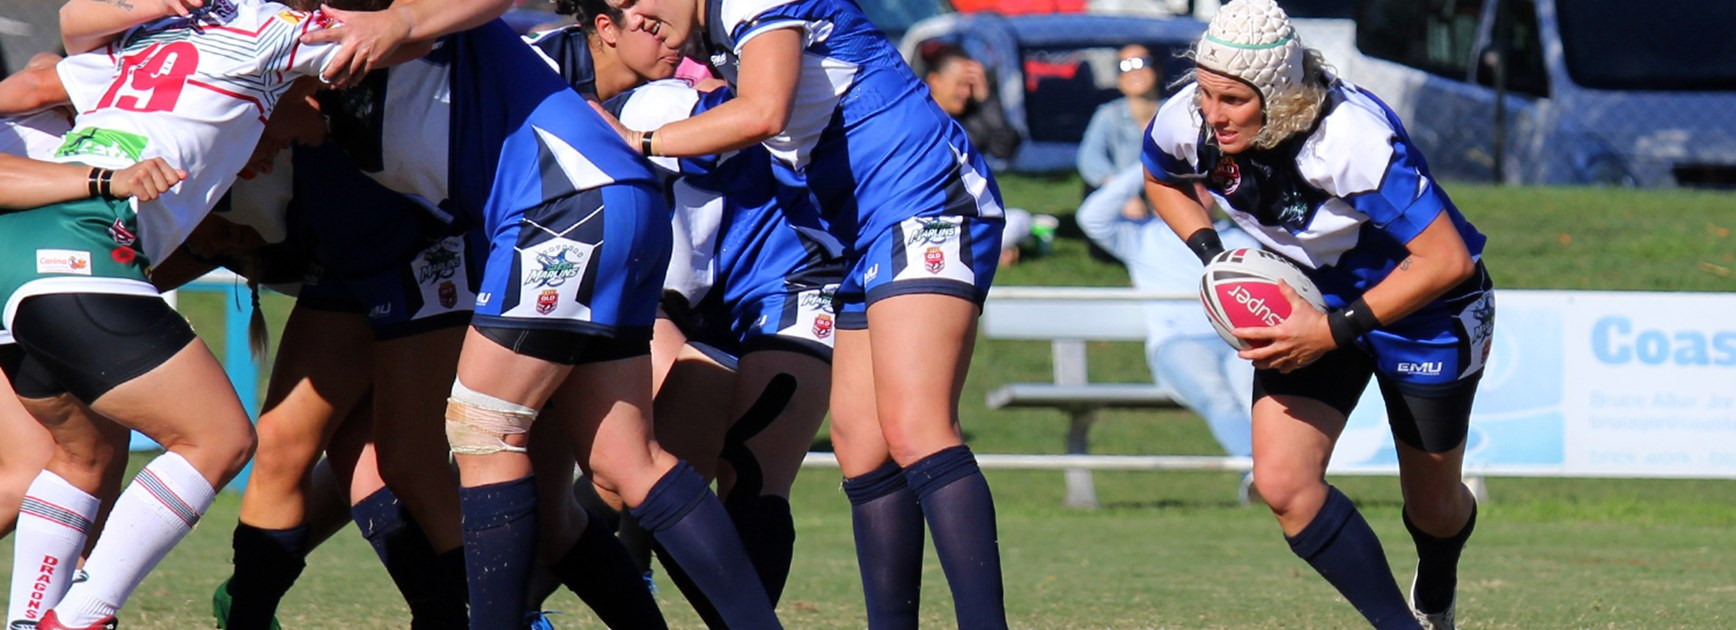 Gold Coast to host Harvey Norman Women's National Championship